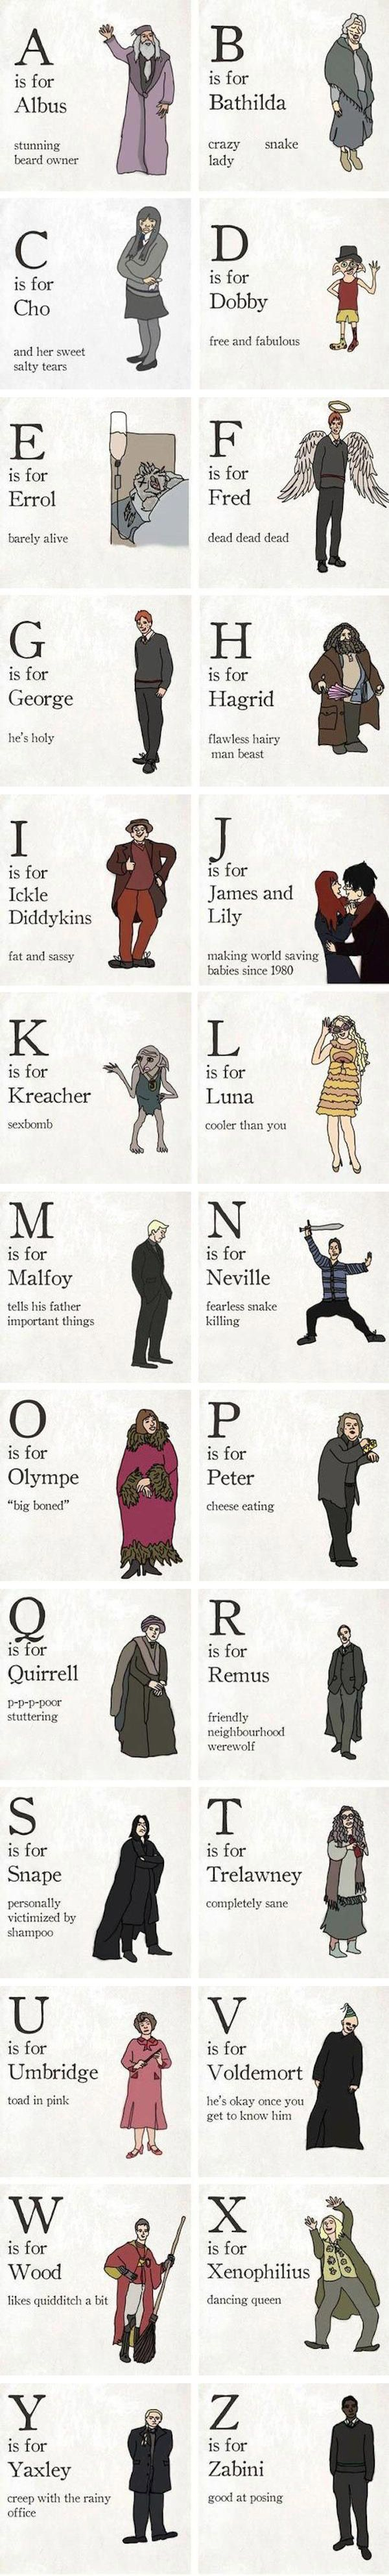 Harry, Ron, and Hermione aren't even in this...